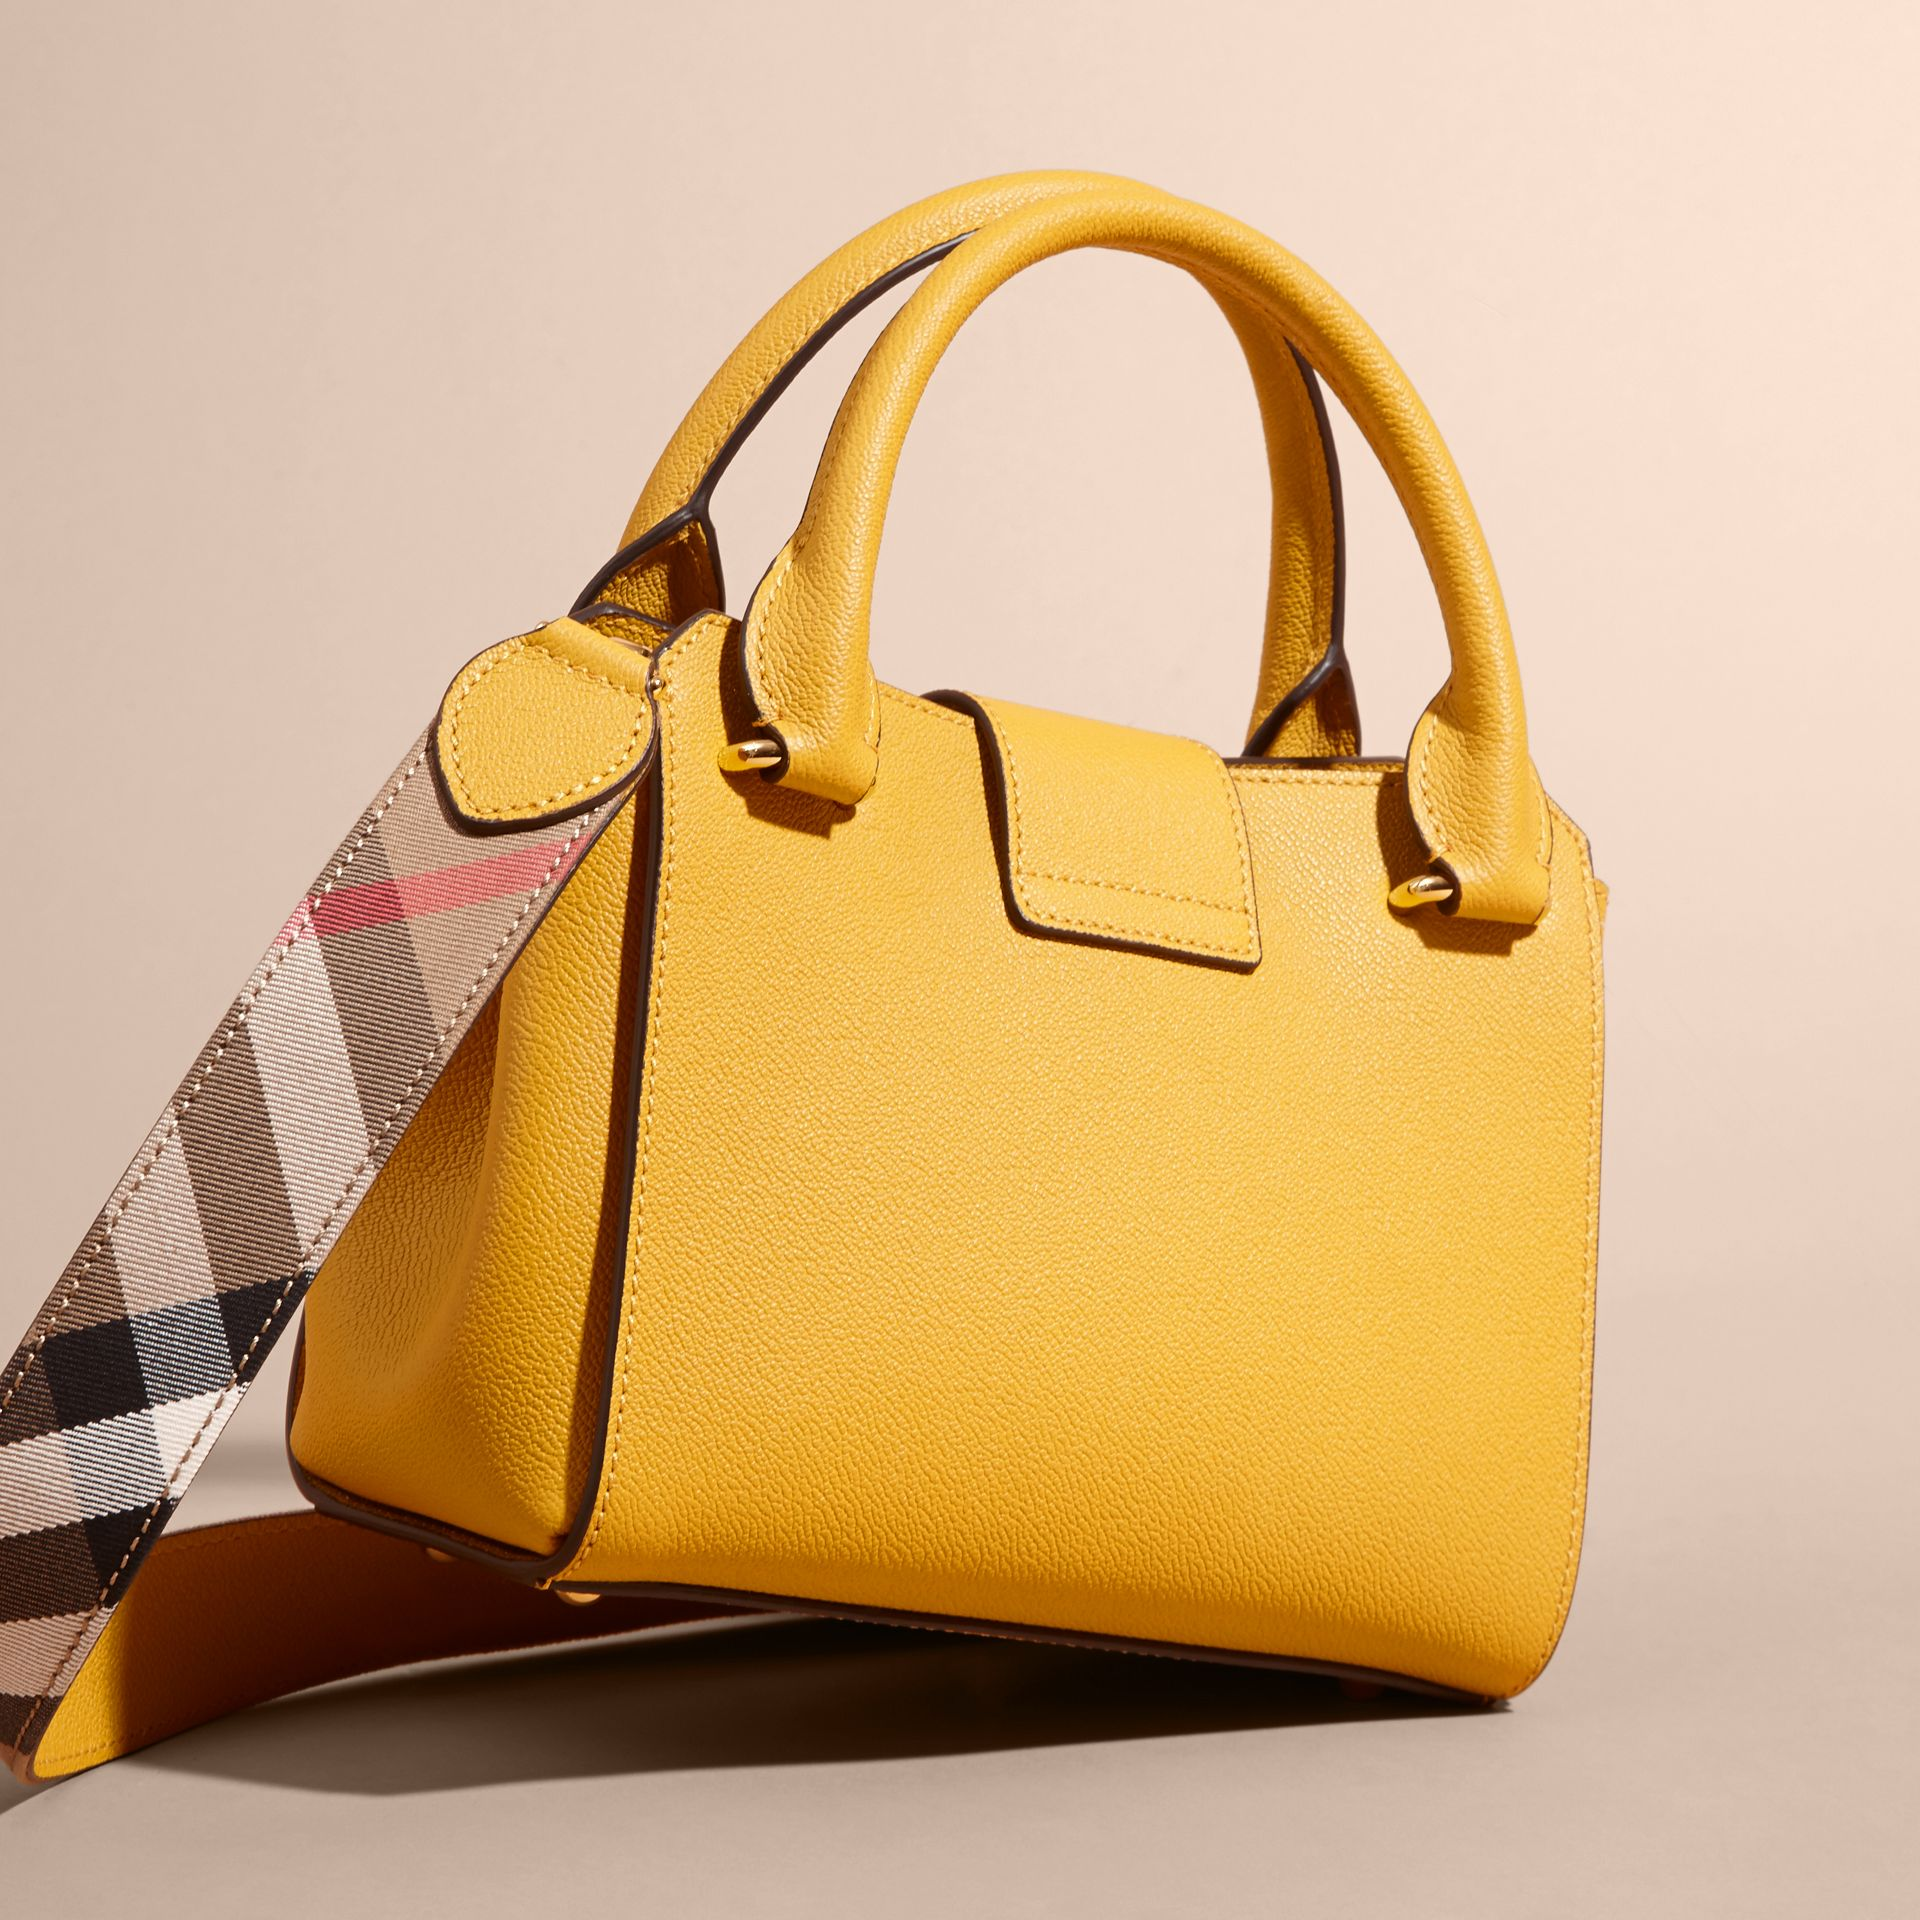 The Small Buckle Tote in Grainy Leather in Bright Straw - Women | Burberry Singapore - gallery image 5